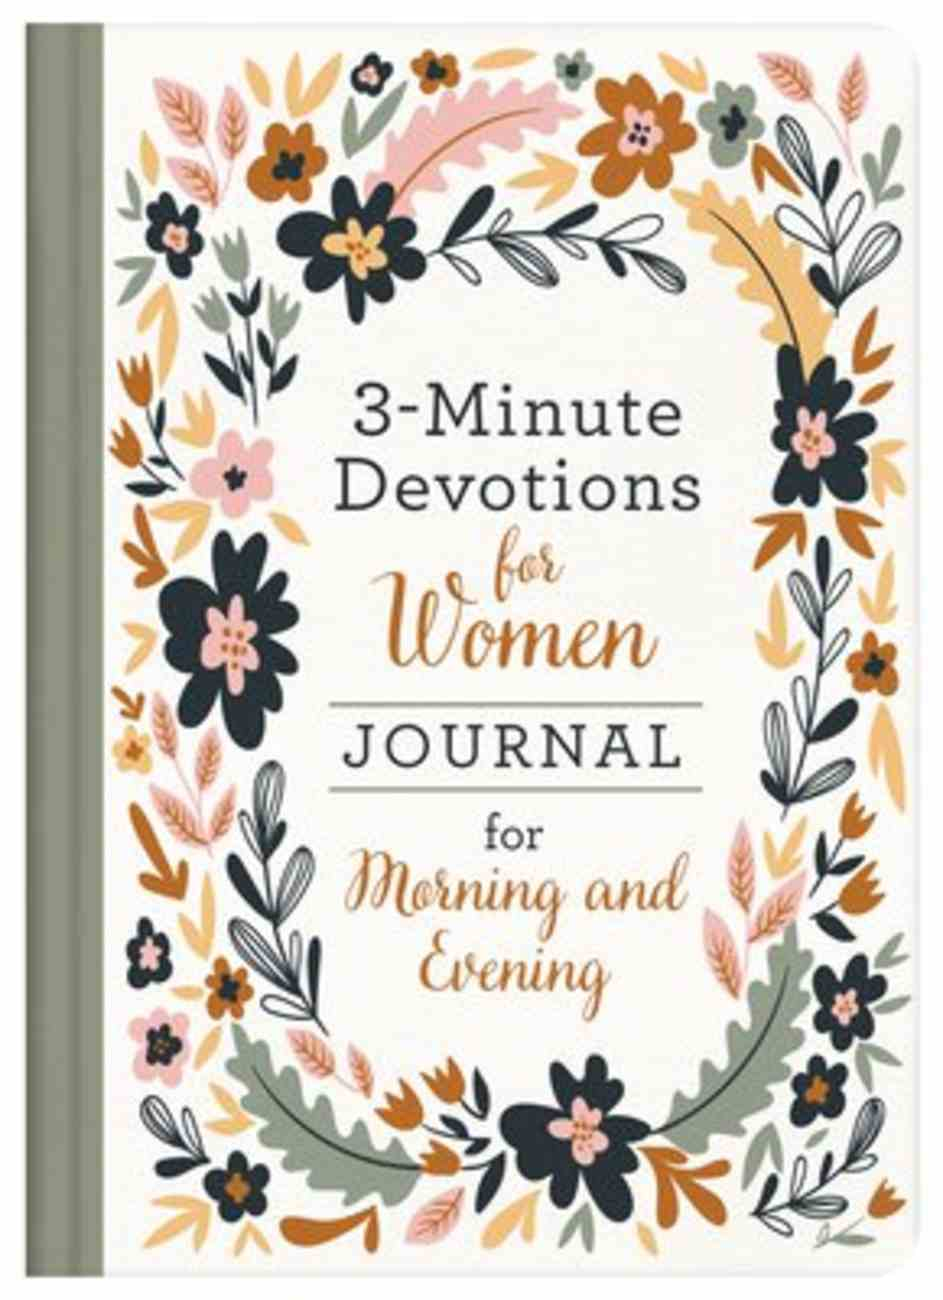 3-Minute Devotions For Women Journal For Morning and Evening (3 Minute Devotions Series) Hardback